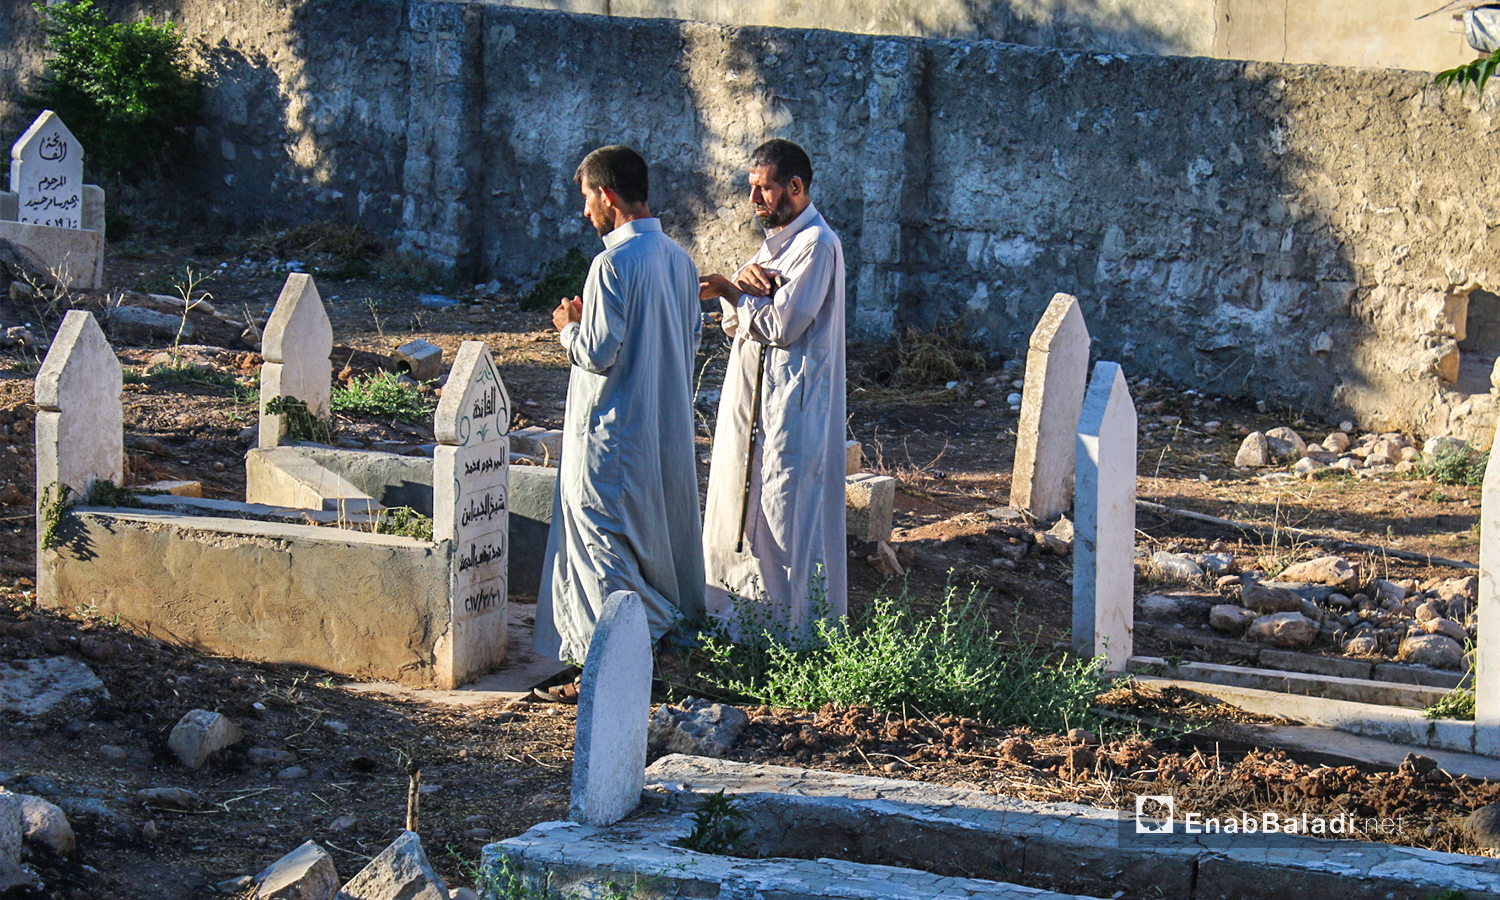 Tow men visiting the grave of one of their family members in the first day of Eid al-Adha in Dabiq town in northern Aleppo countryside – 31 July 2020 (Enab Baladi / Abdul Salam Majan)